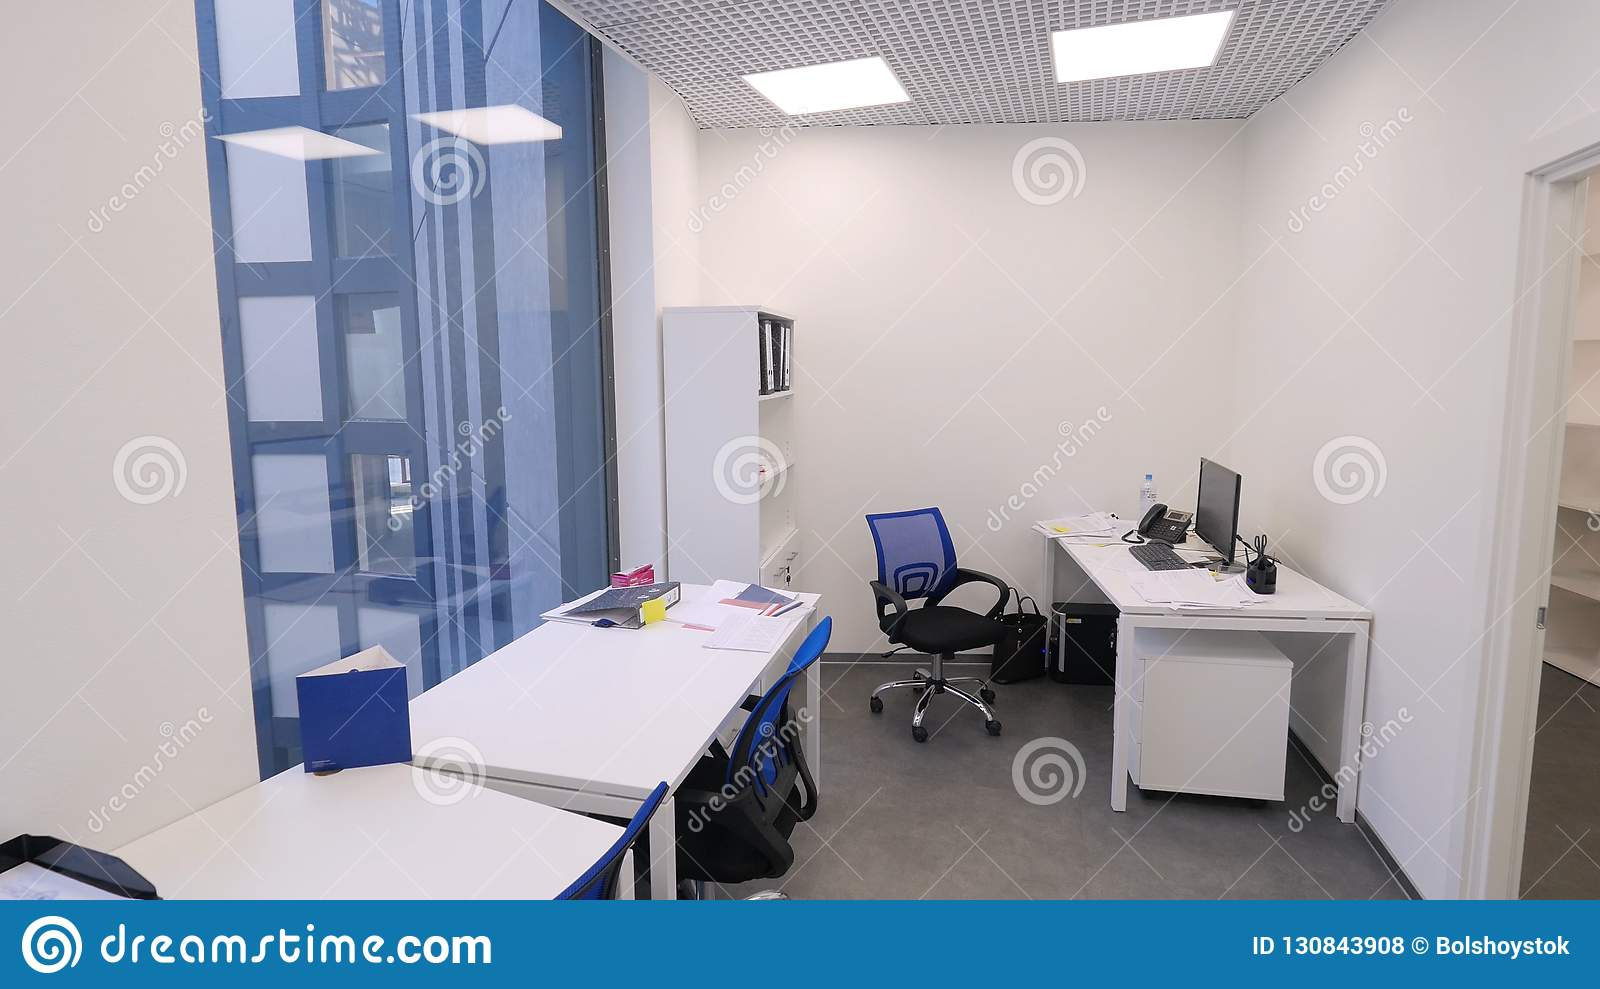 Small Office View Non Working Time In Office Modern Compact Office Room With Several Workstations And Bright Stock Photo Image Of Concept Glass 130843908